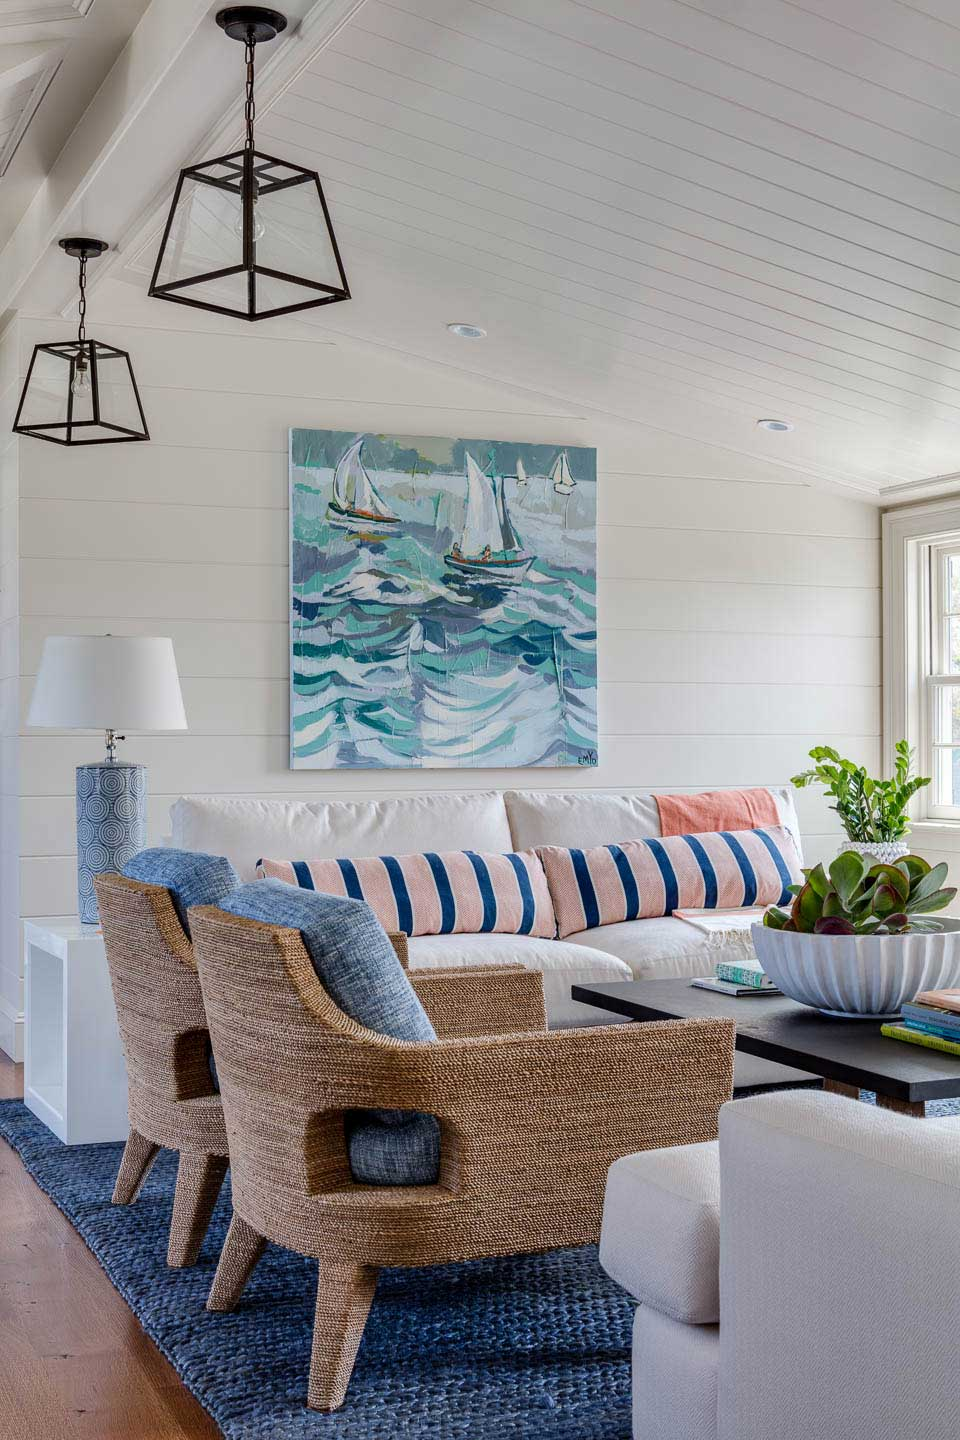 cape house, family room, cape cod style, boat painting, family room design, seating, blue rug, white couch, interior design, digs, digs design